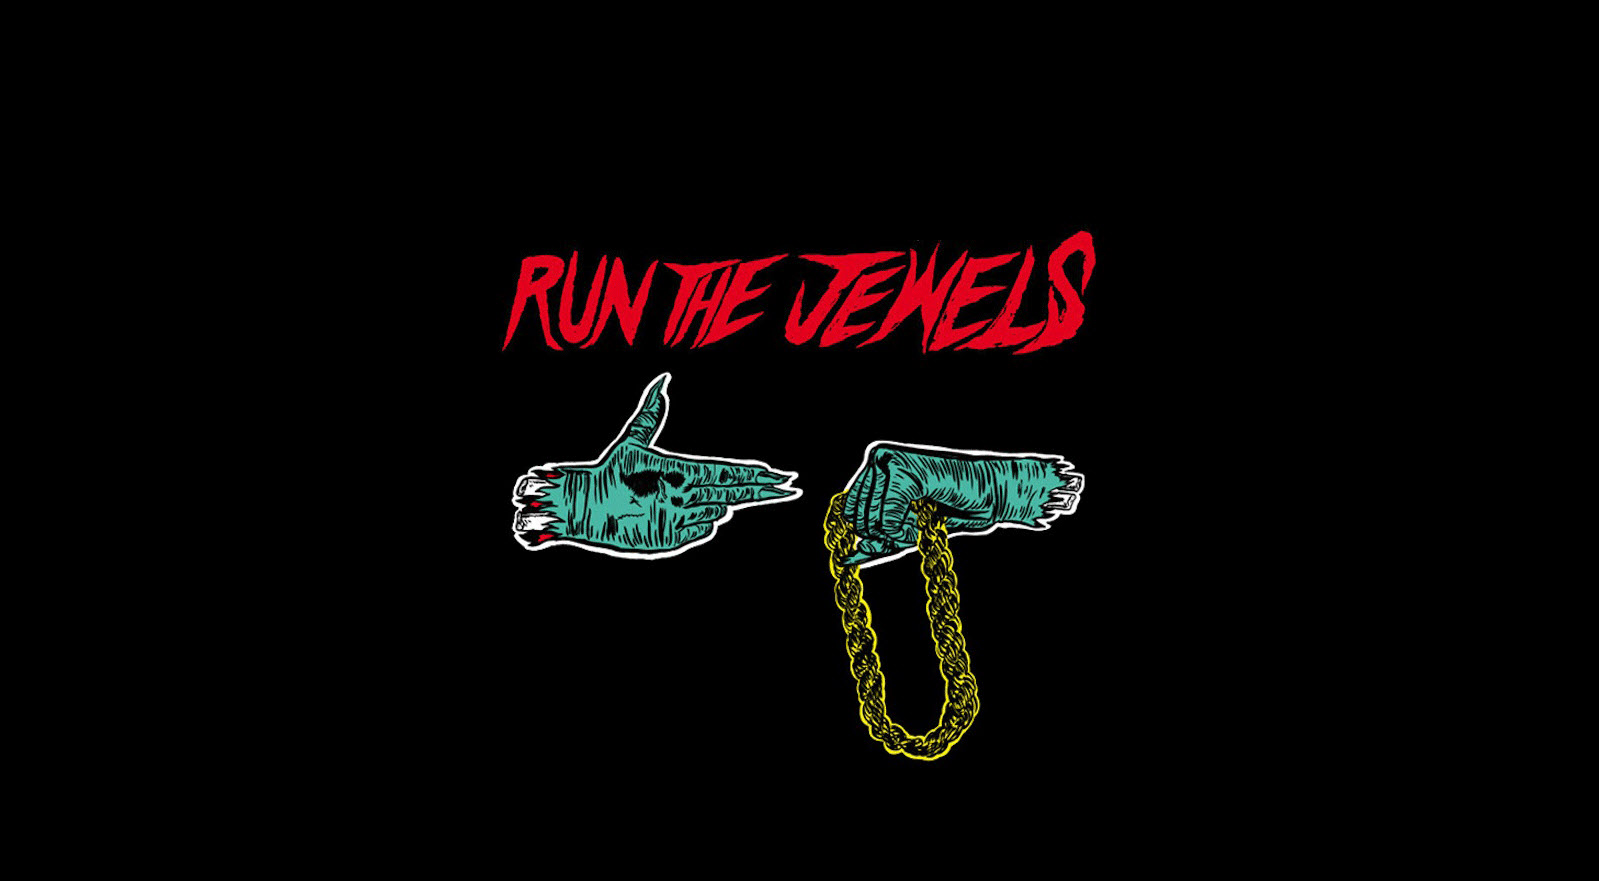 Simple Wallpaper Music Mike - Run-The-Jewels  You Should Have_452125.jpg